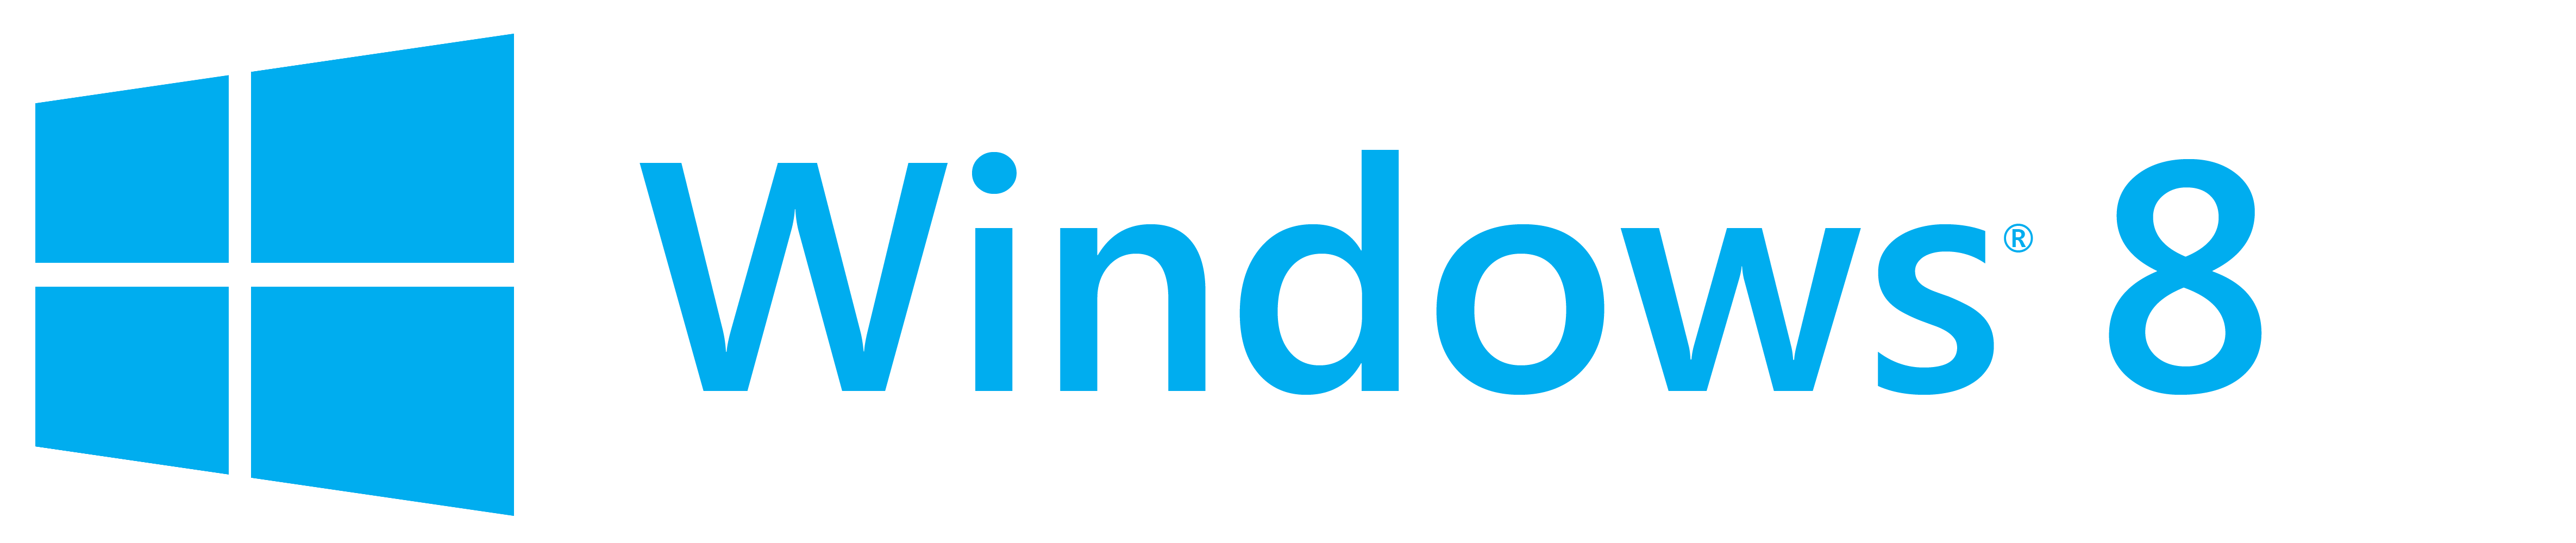 Microsoft Windows Png PNG Image